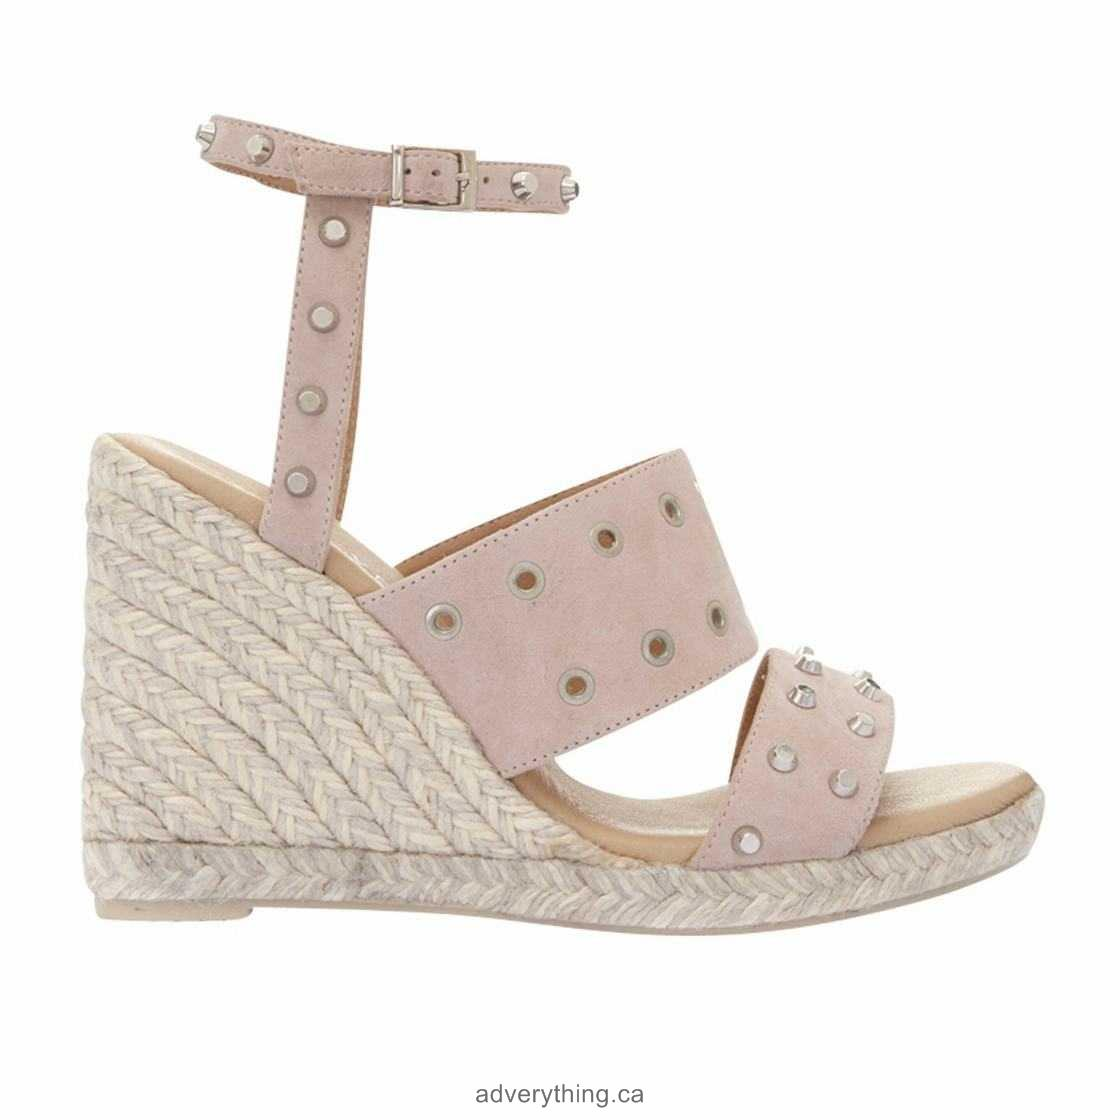 Cut down price Mint Velvet Steph Wedge Heeled Sandals, Nude - Women's Sandals